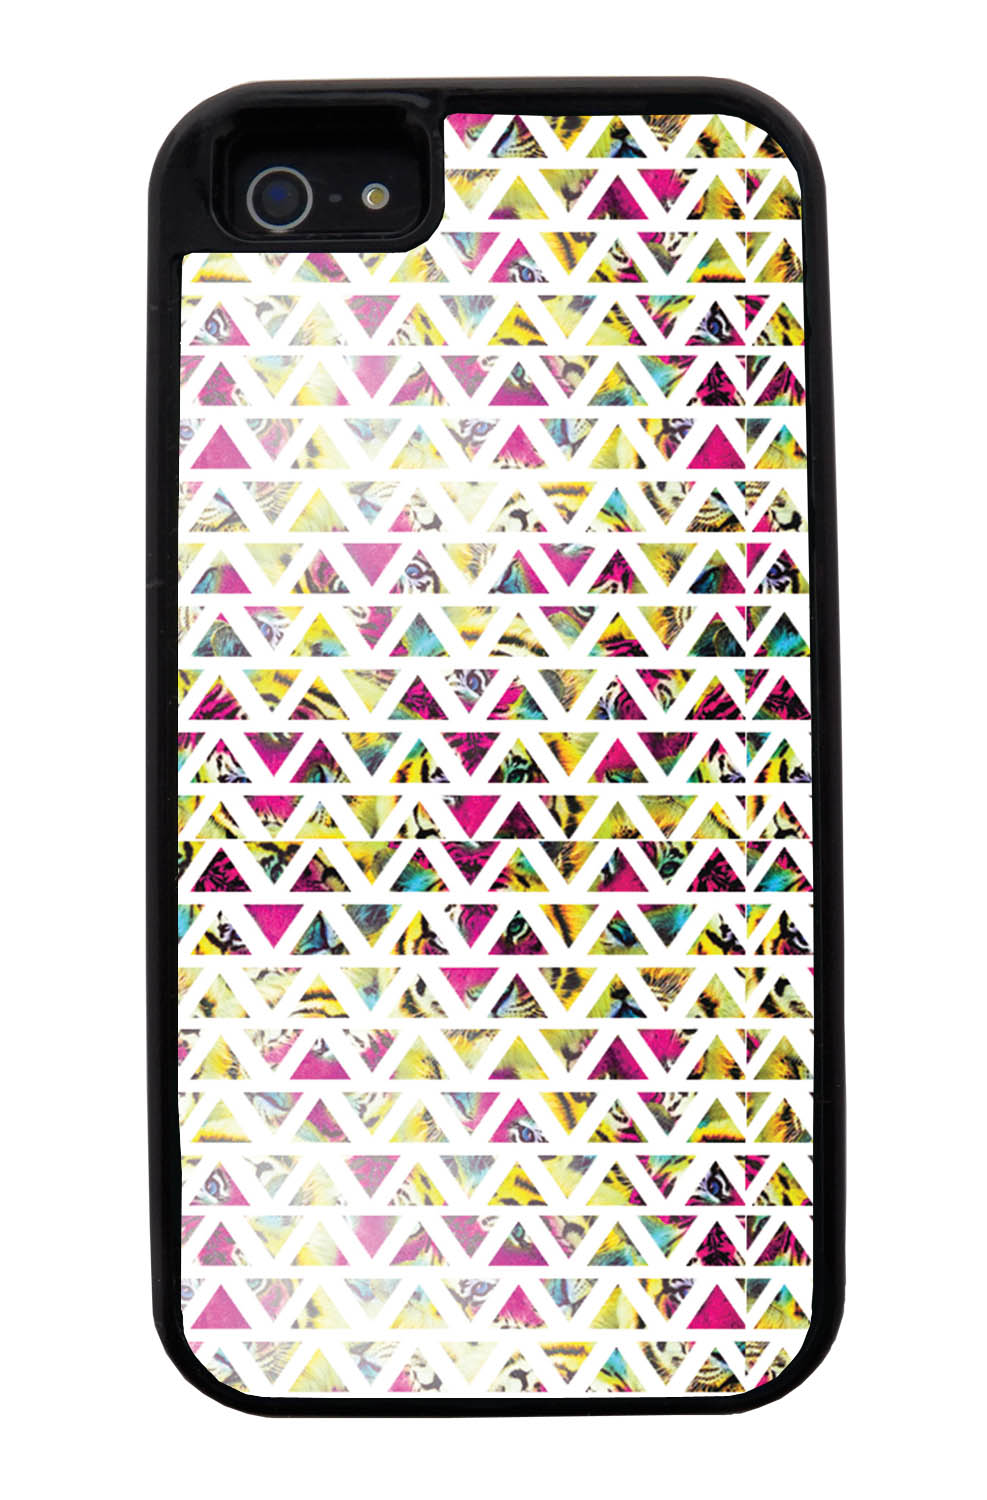 Apple iPhone 5 / 5S Aztec Case - Triangles On Pink Yellow Tiger - Geometric - Black Tough Hybrid Case